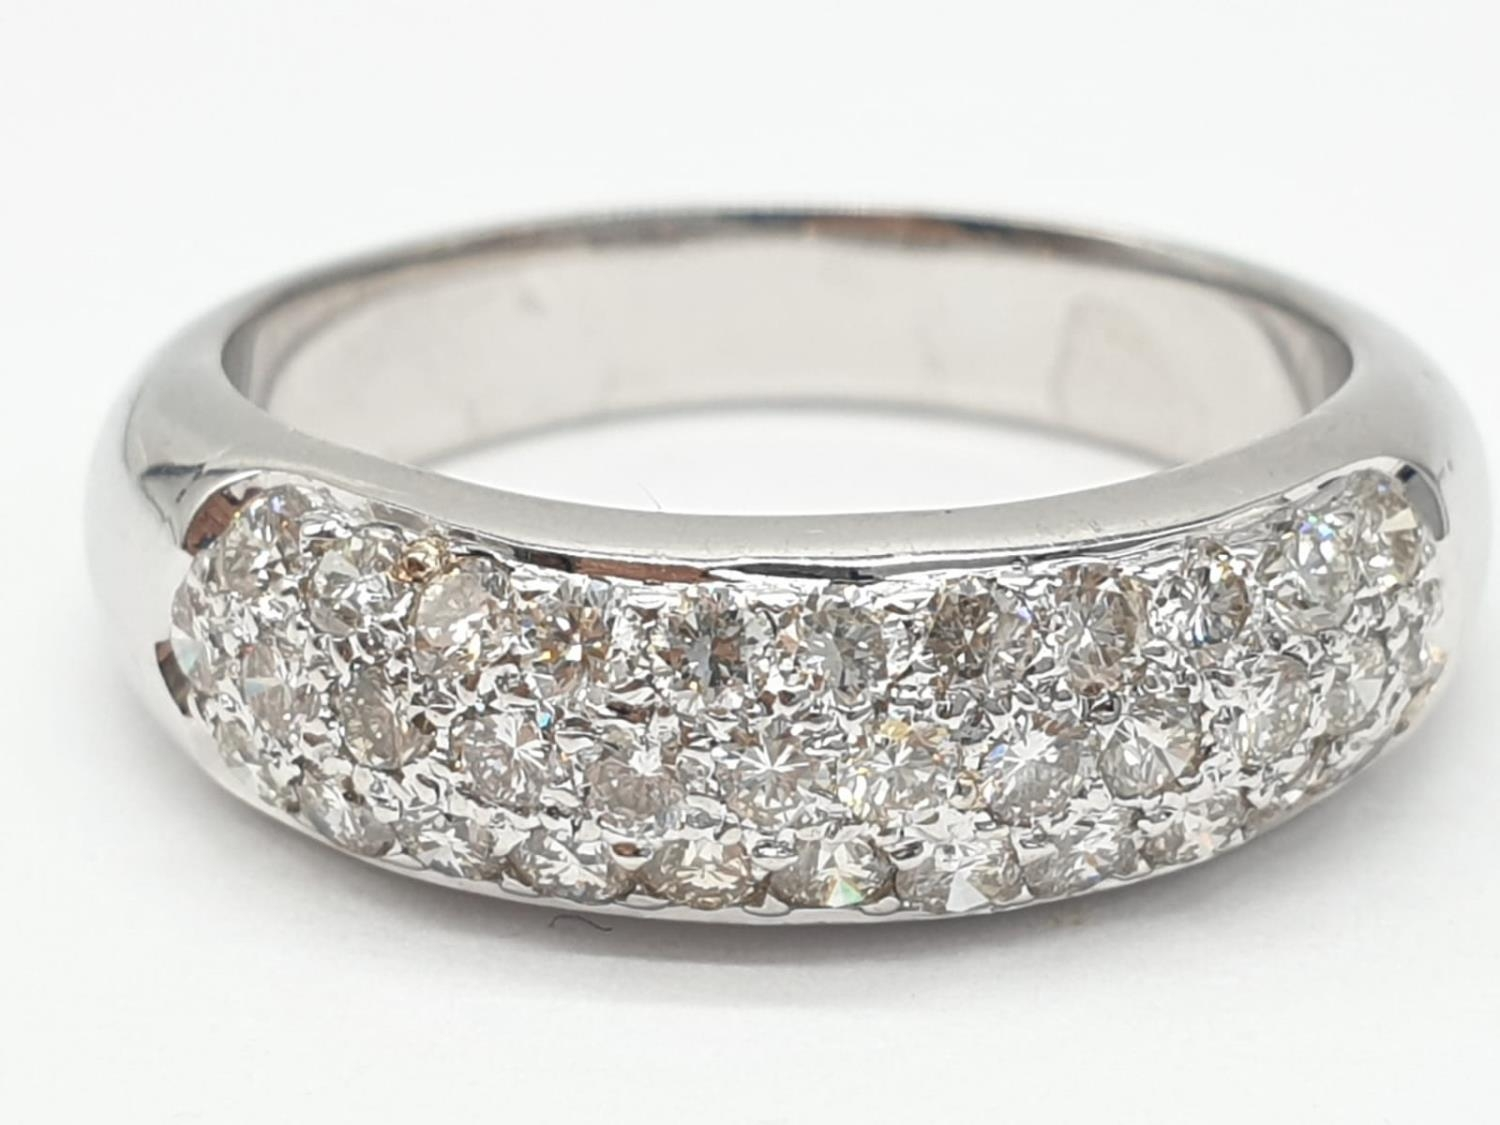 A diamond encrusted 18ct white gold ring. 6.4g and size N.